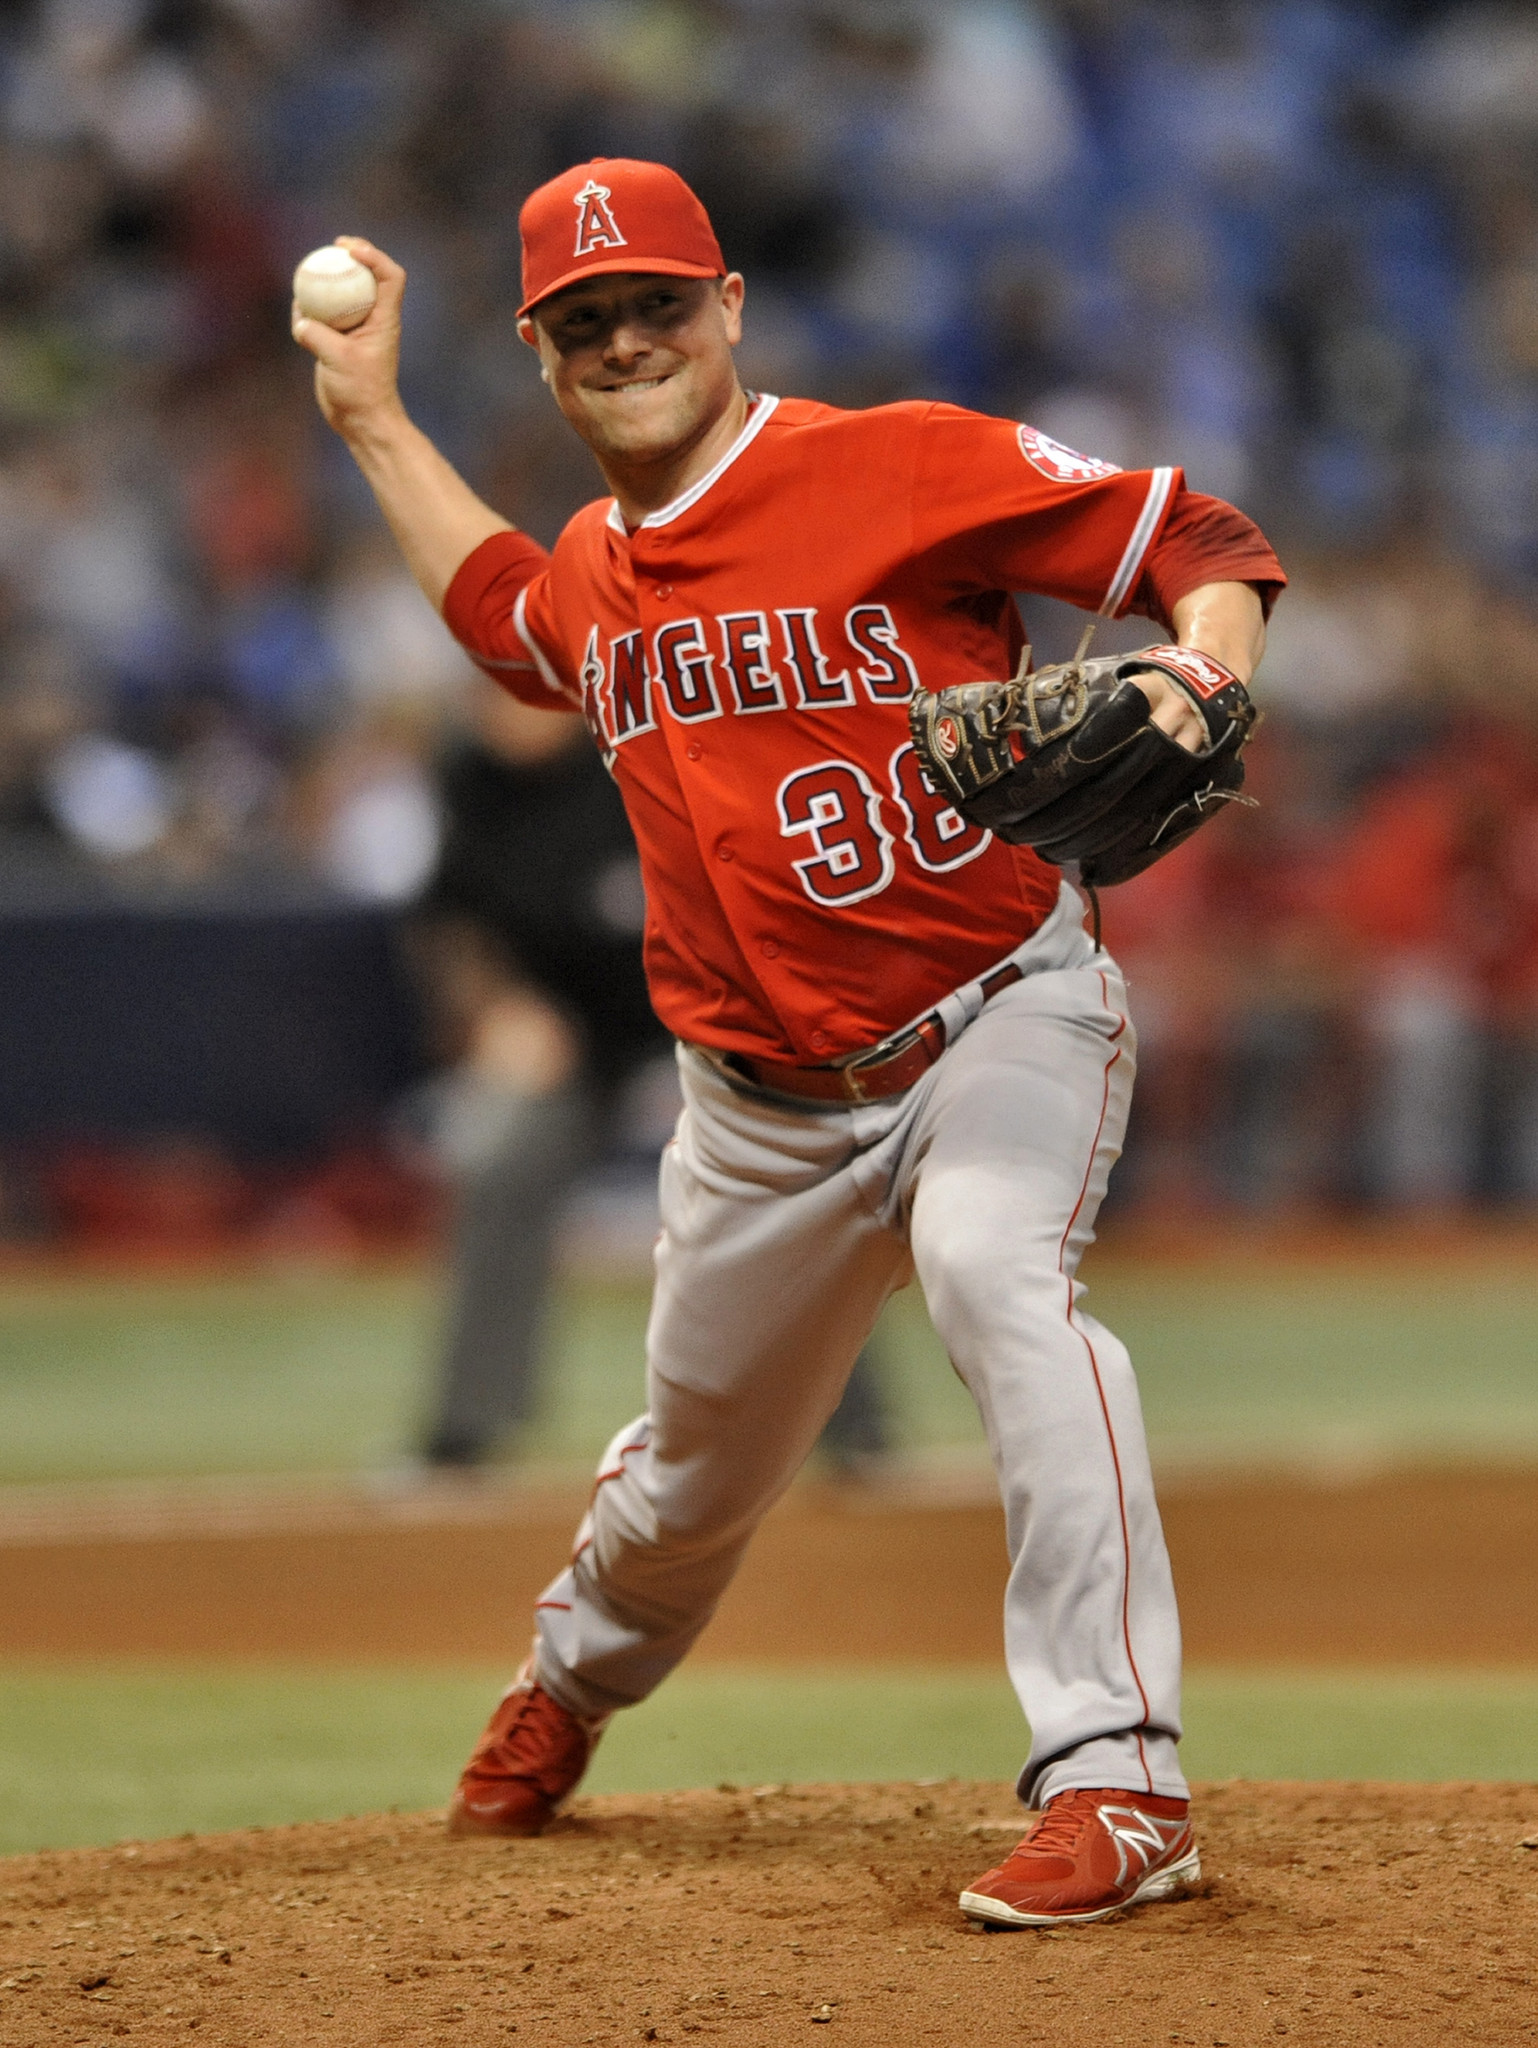 Ct Pick 3 >> Cubs acquire reliever Joe Smith from Angels - Chicago Tribune